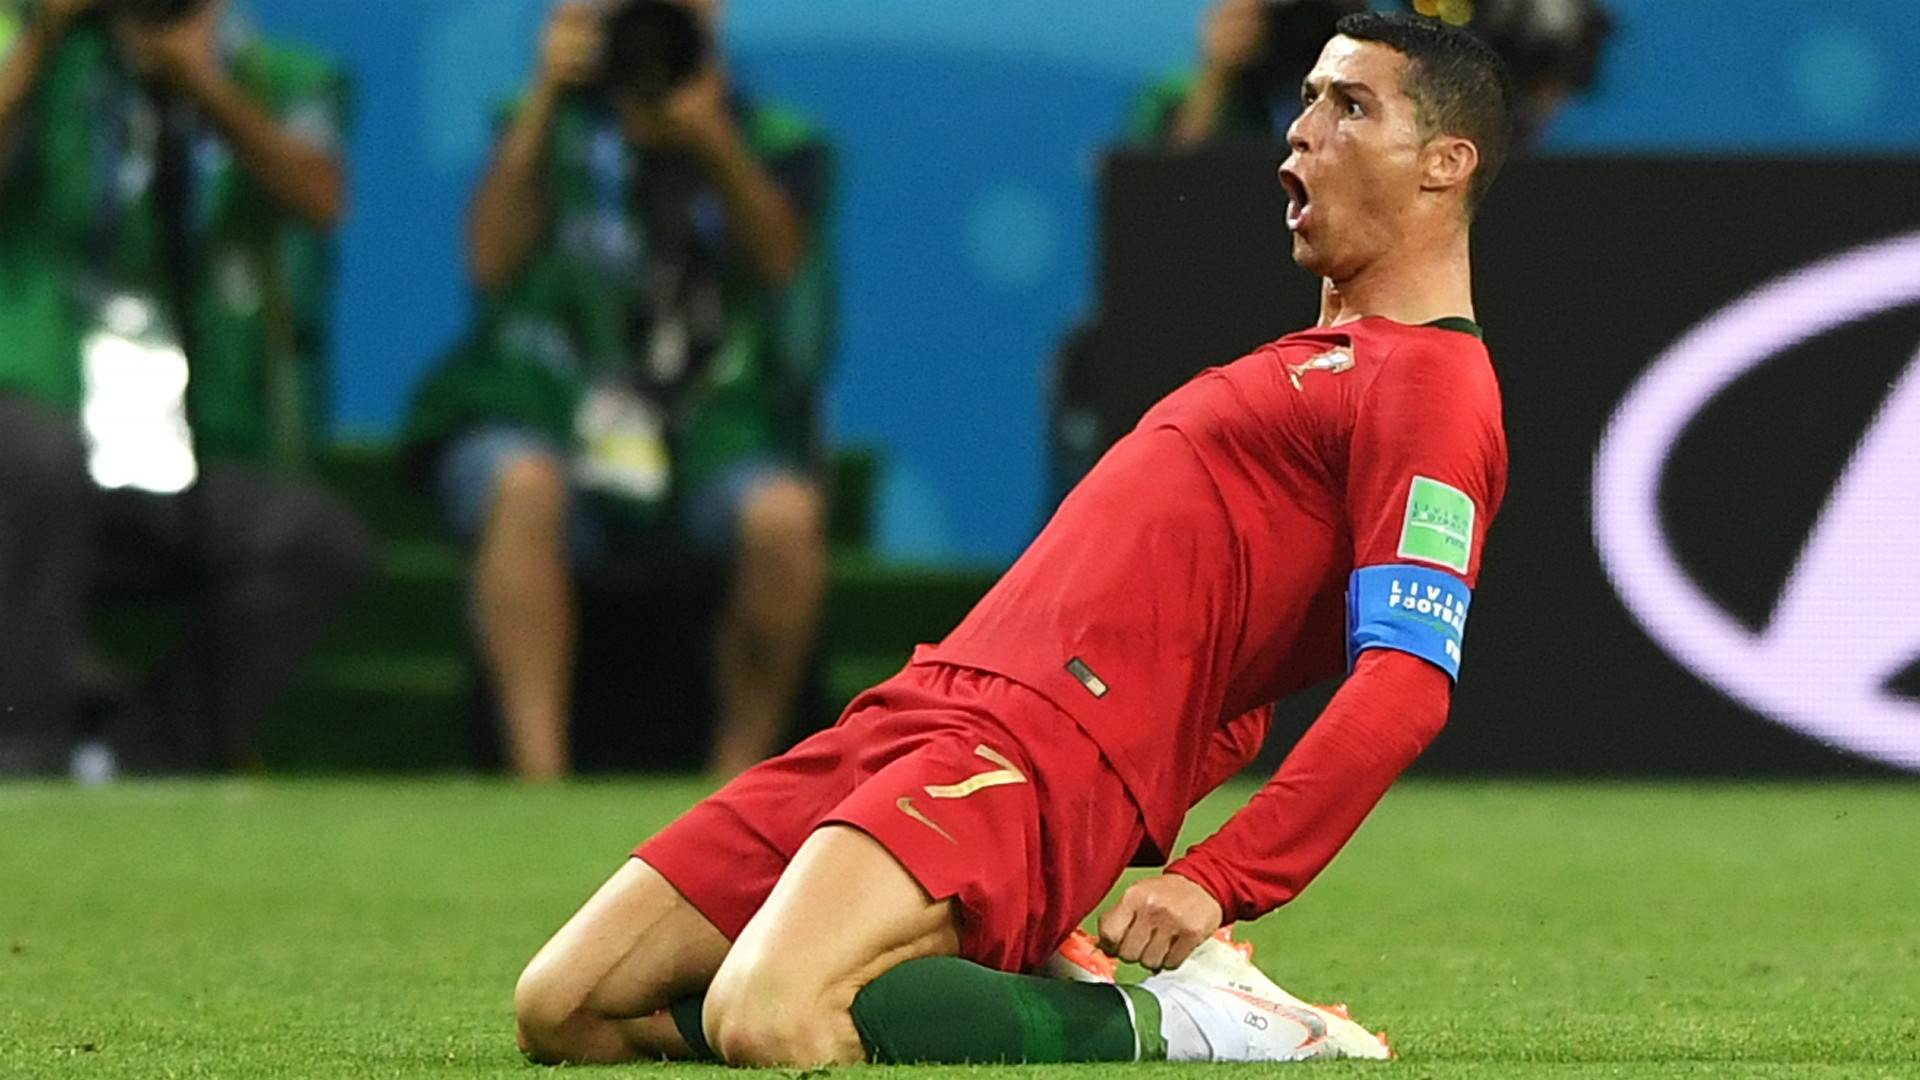 Did American World Cup Referee Ask Cristiano Ronaldo For His Jersey?